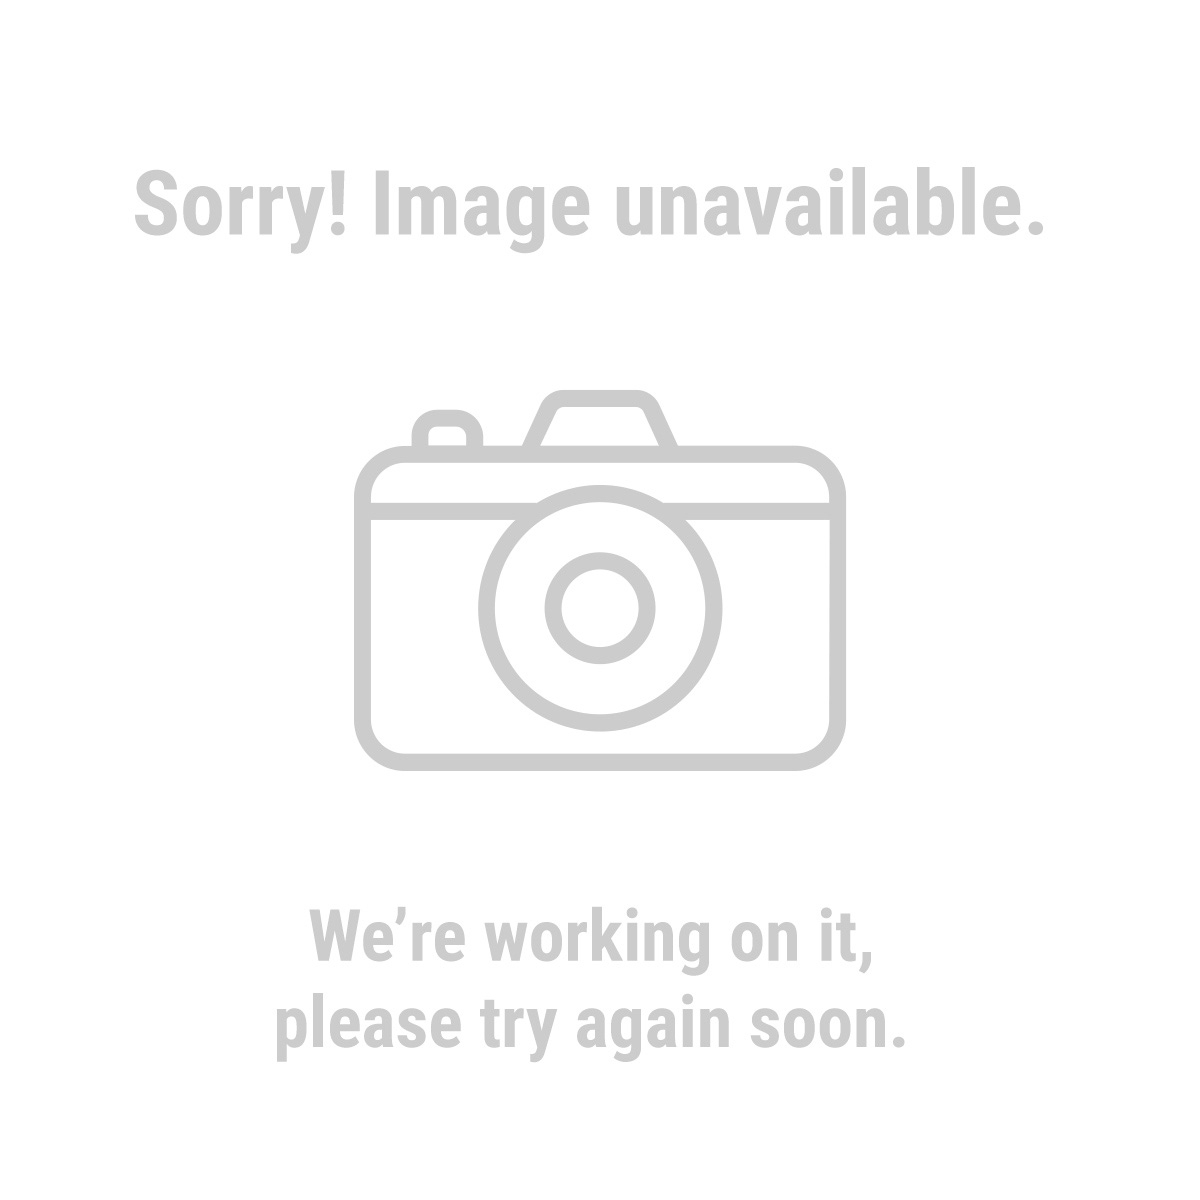 Admiral® 62735 7-1/4 in. 40T Finishing Circular Saw Blade